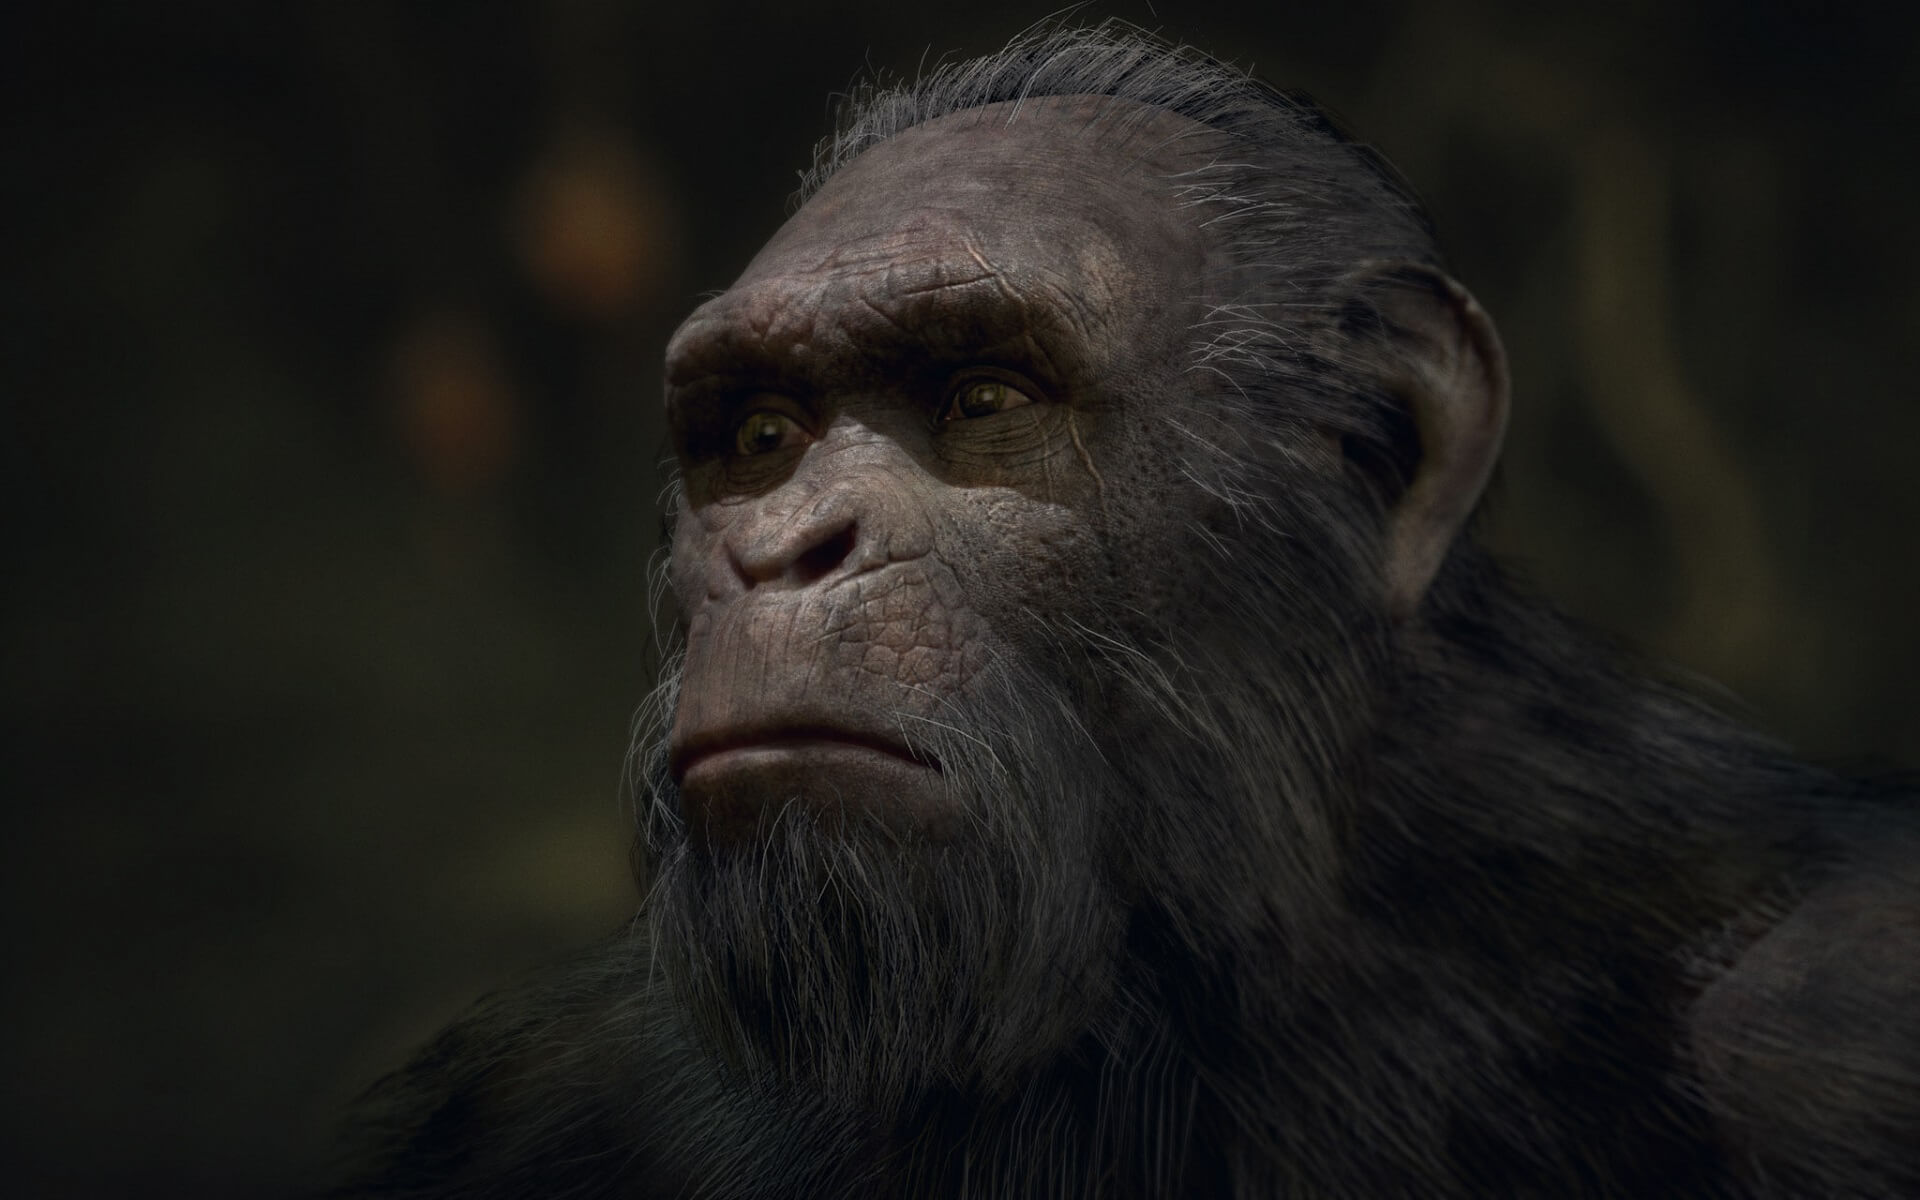 Khan | Planet of the Apes Wiki | FANDOM powered by Wikia